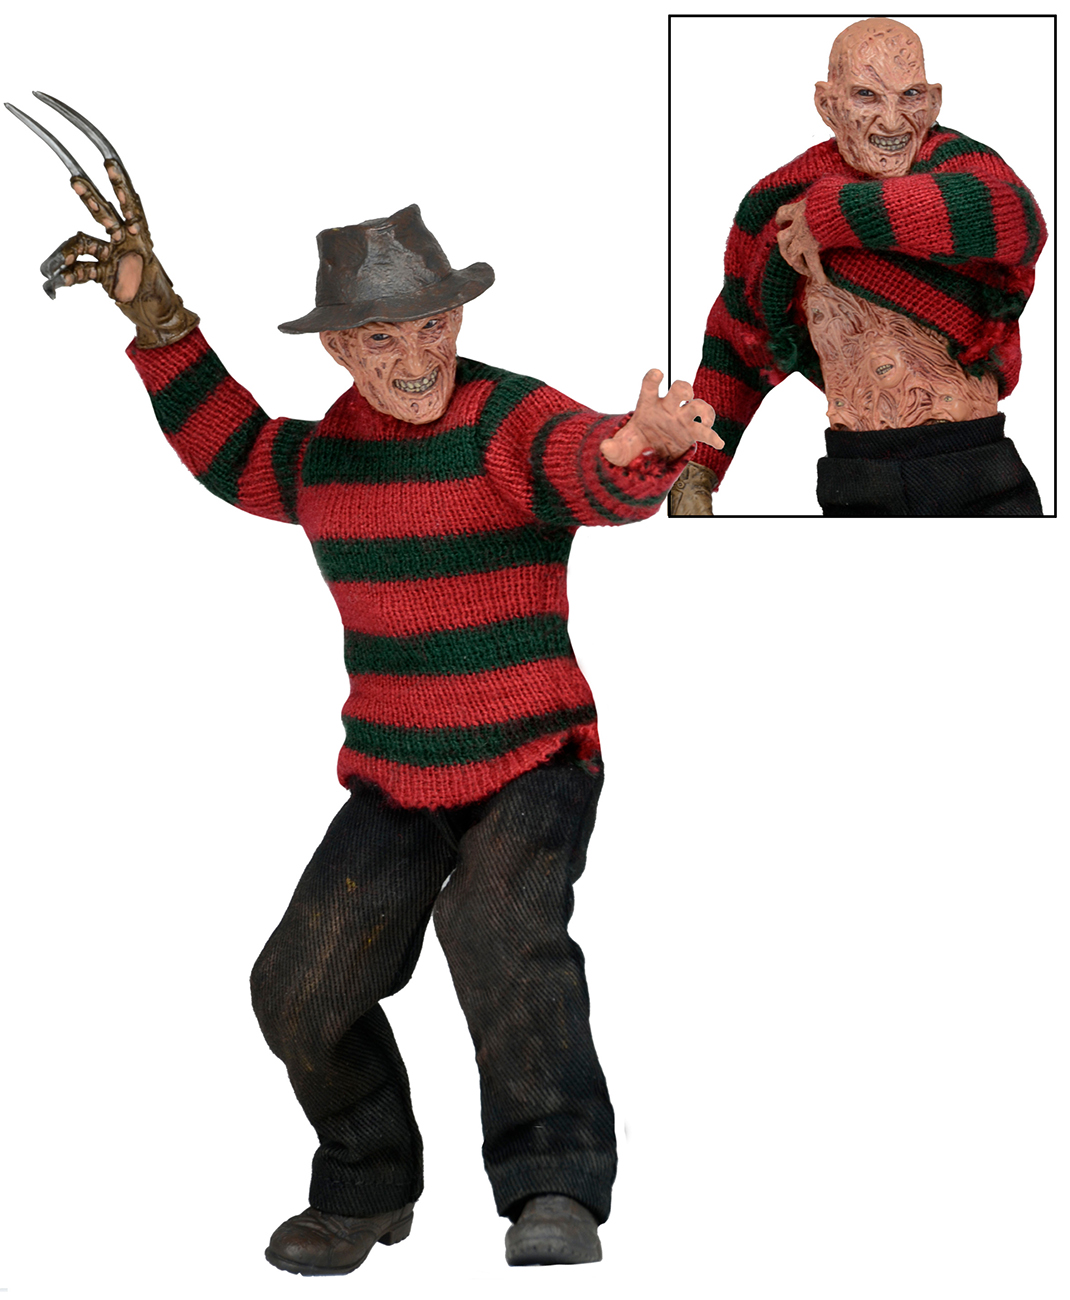 Jason Toys For Boys : Nightmare on elm street part quot clothed figure freddy